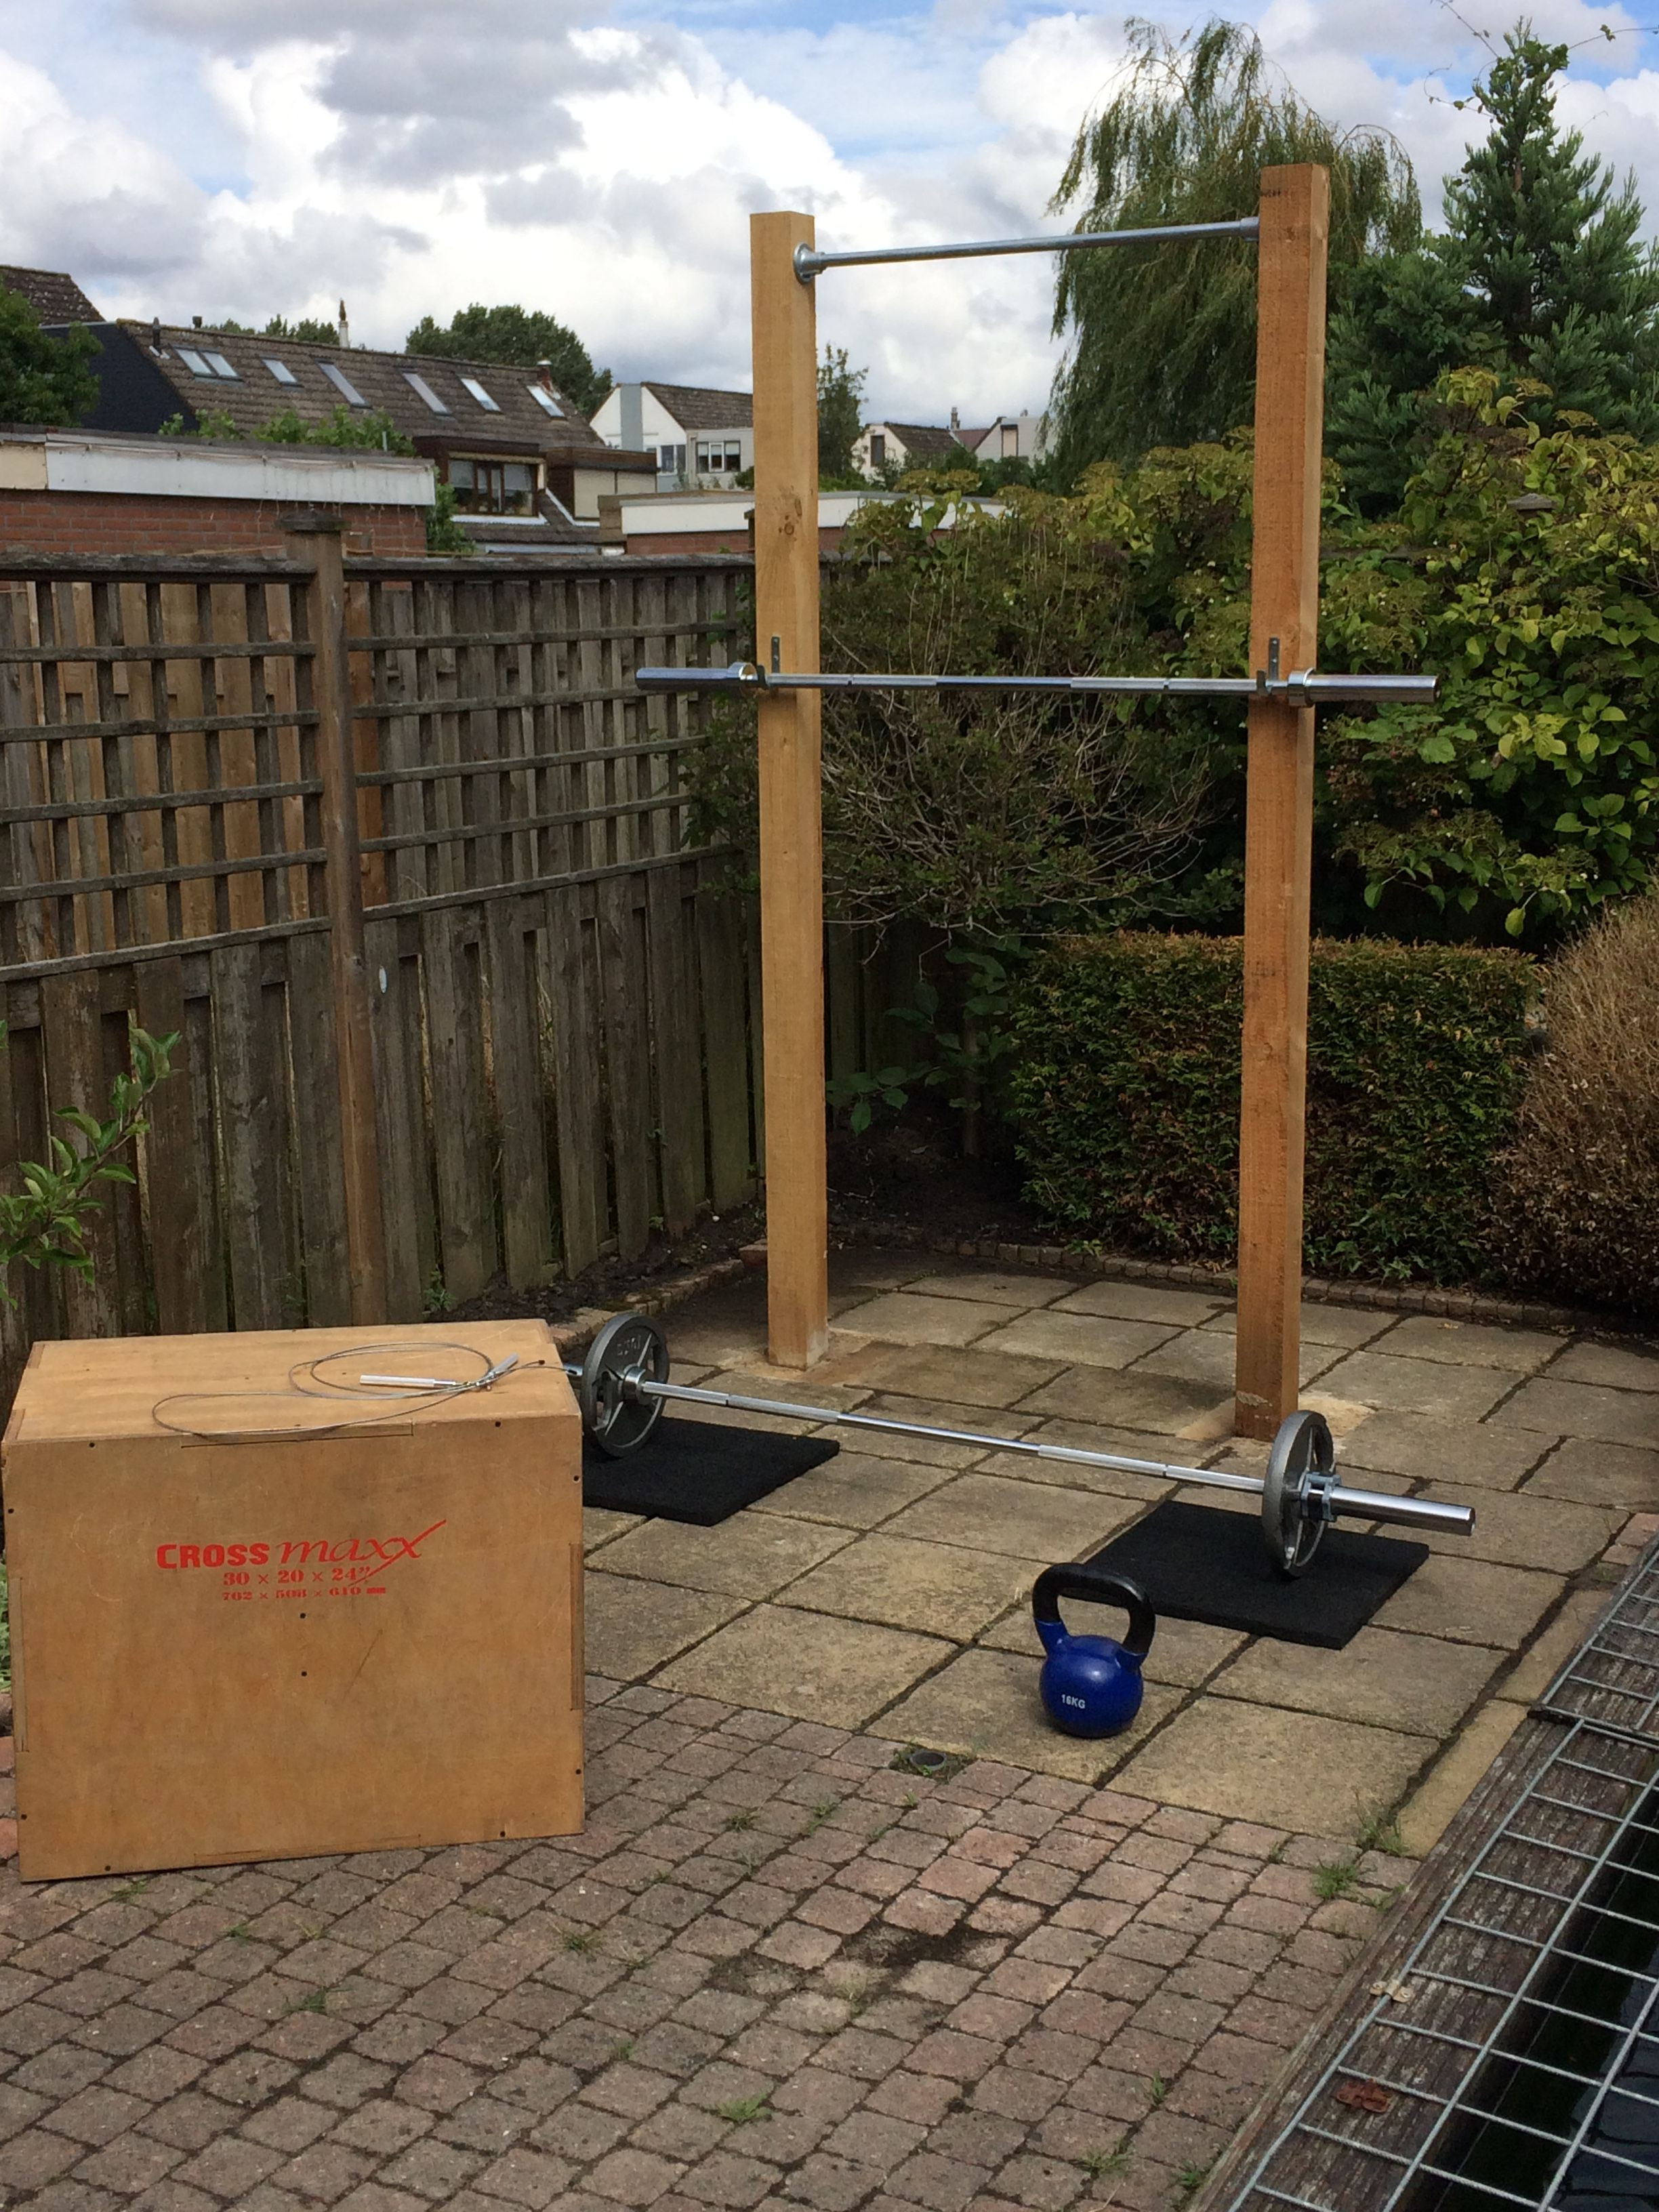 Best ideas about DIY Outdoor Gym . Save or Pin Pull up & squat diy crossfit rig outdoor Now.